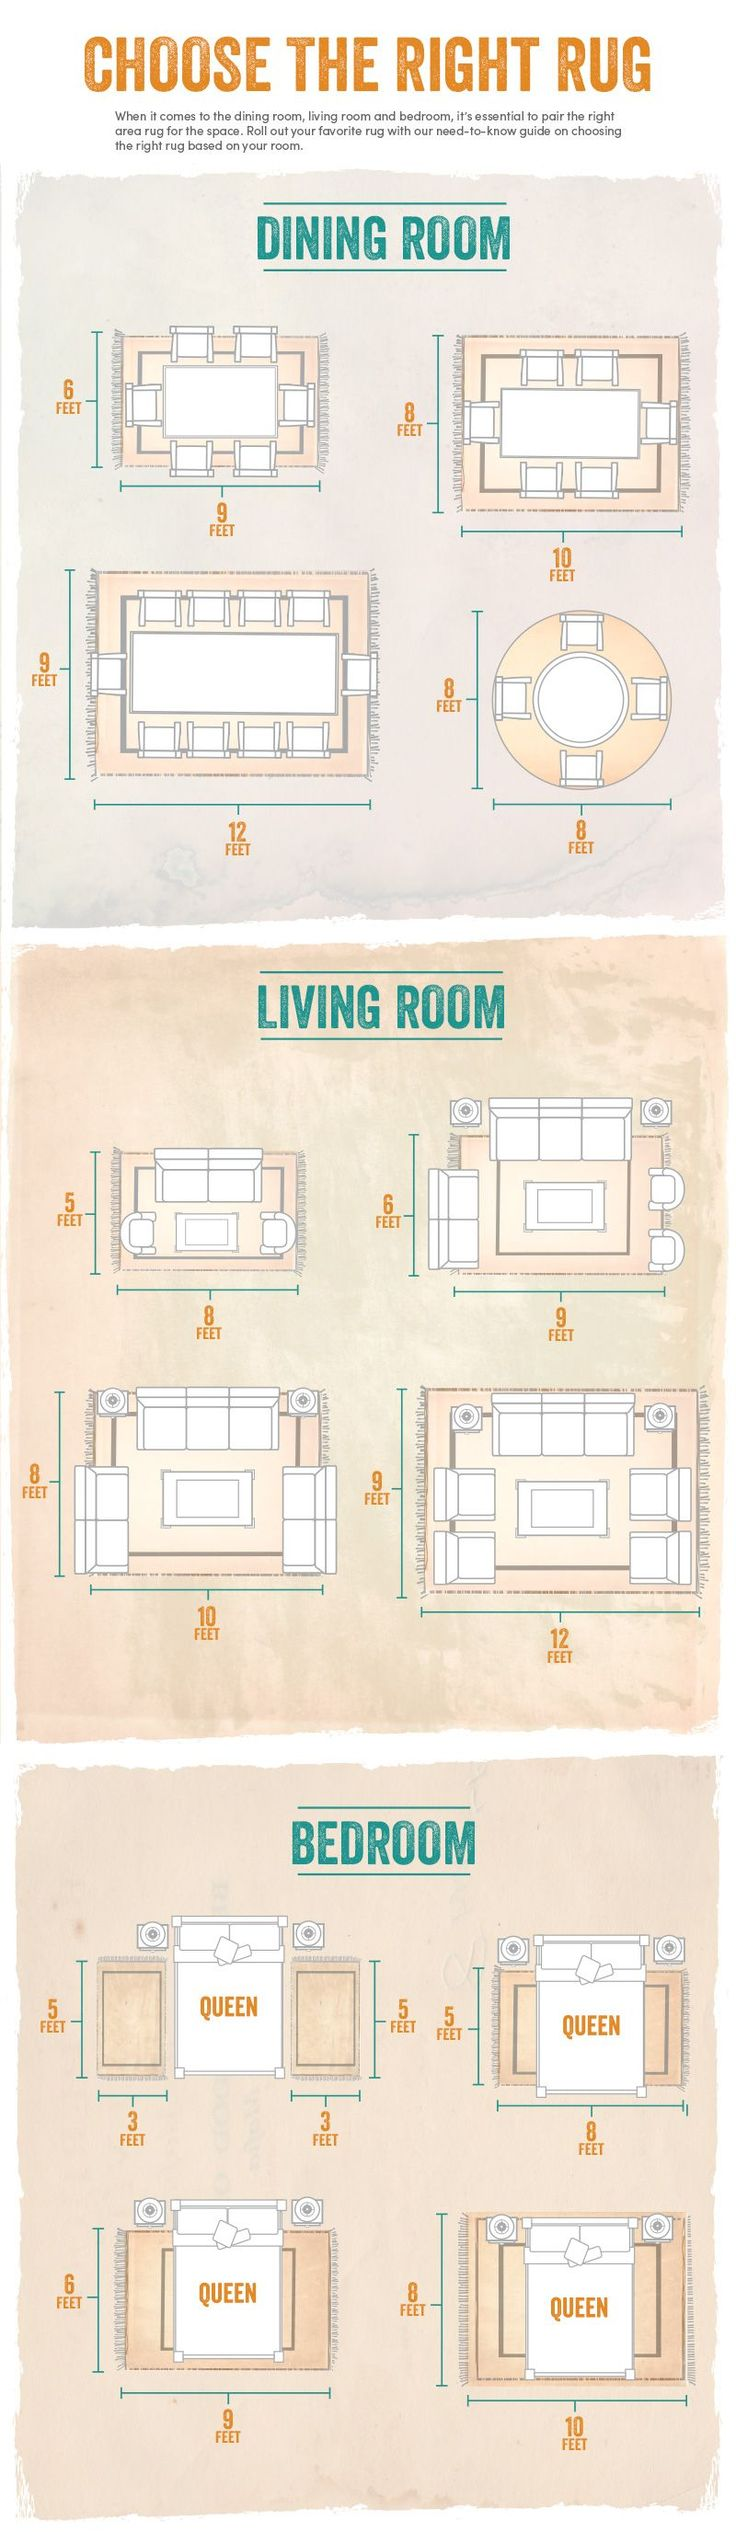 Bedroom Furniture Layout Planner best 10+ arranging bedroom furniture ideas on pinterest | bedroom